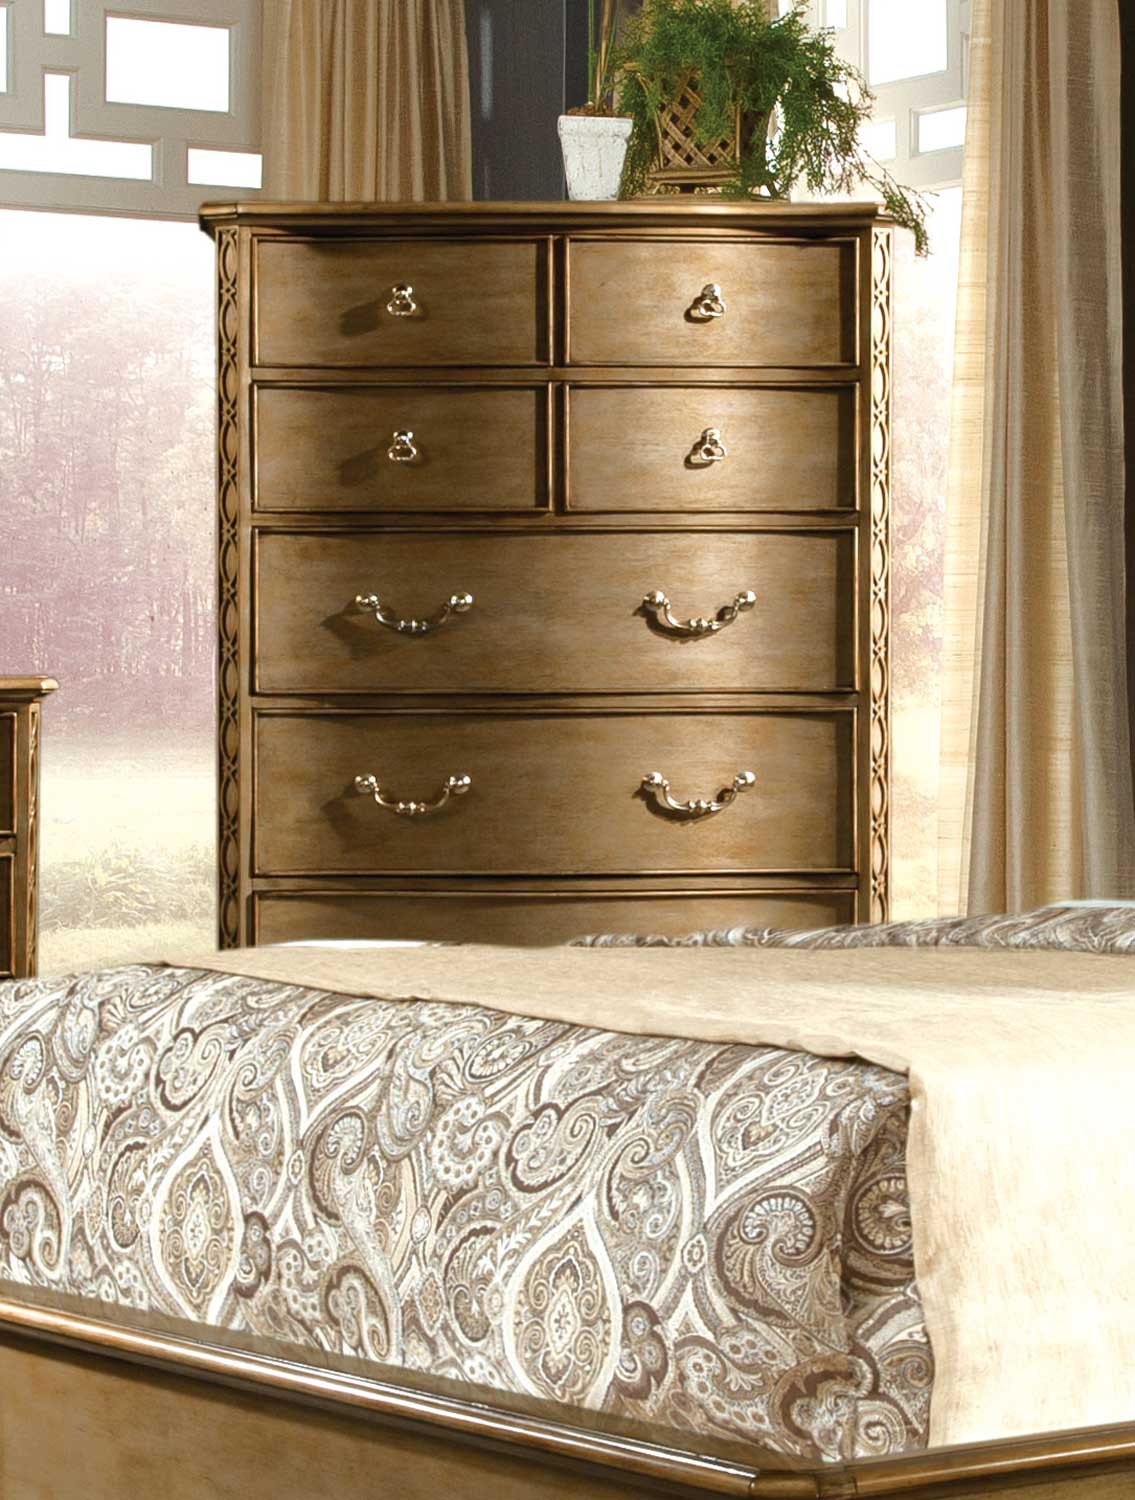 Homelegance Chambord Chest - Champagne Gold